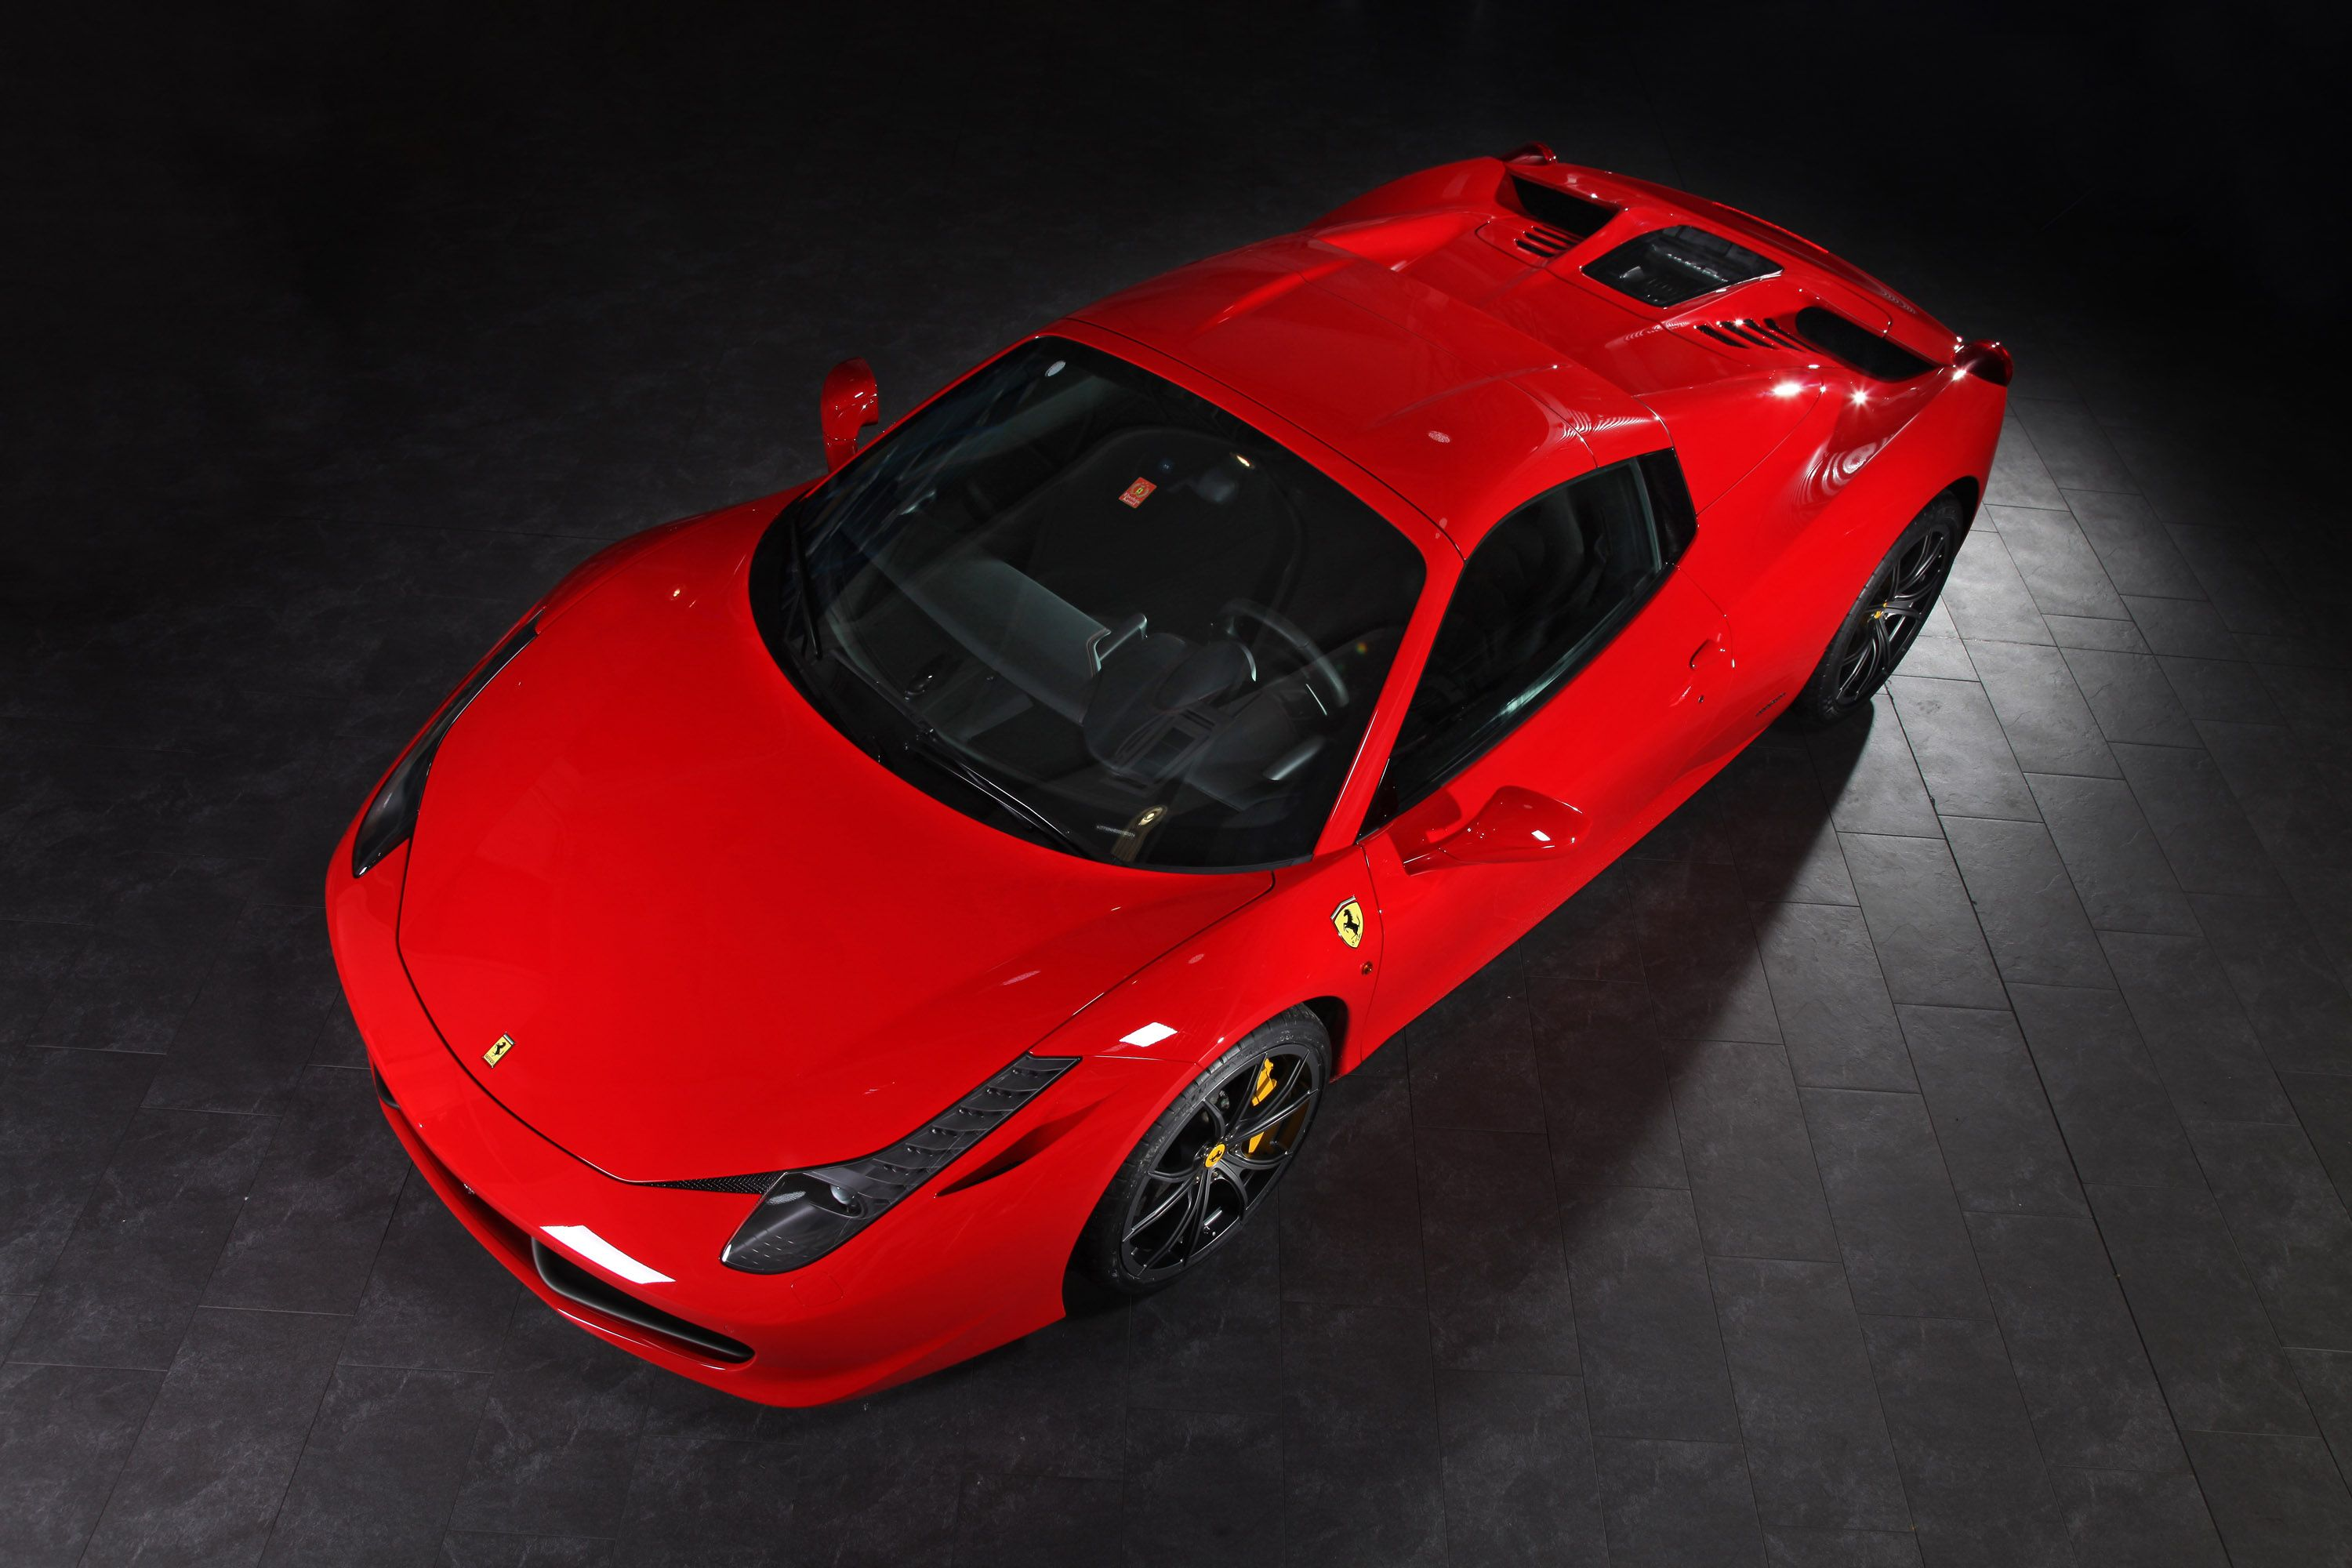 b6c0d8b84baa4d8cd3f433775c940e4b Marvelous Photo Ferrari Mondial 8 Quattrovalvole Rouge Occasion Cars Trend